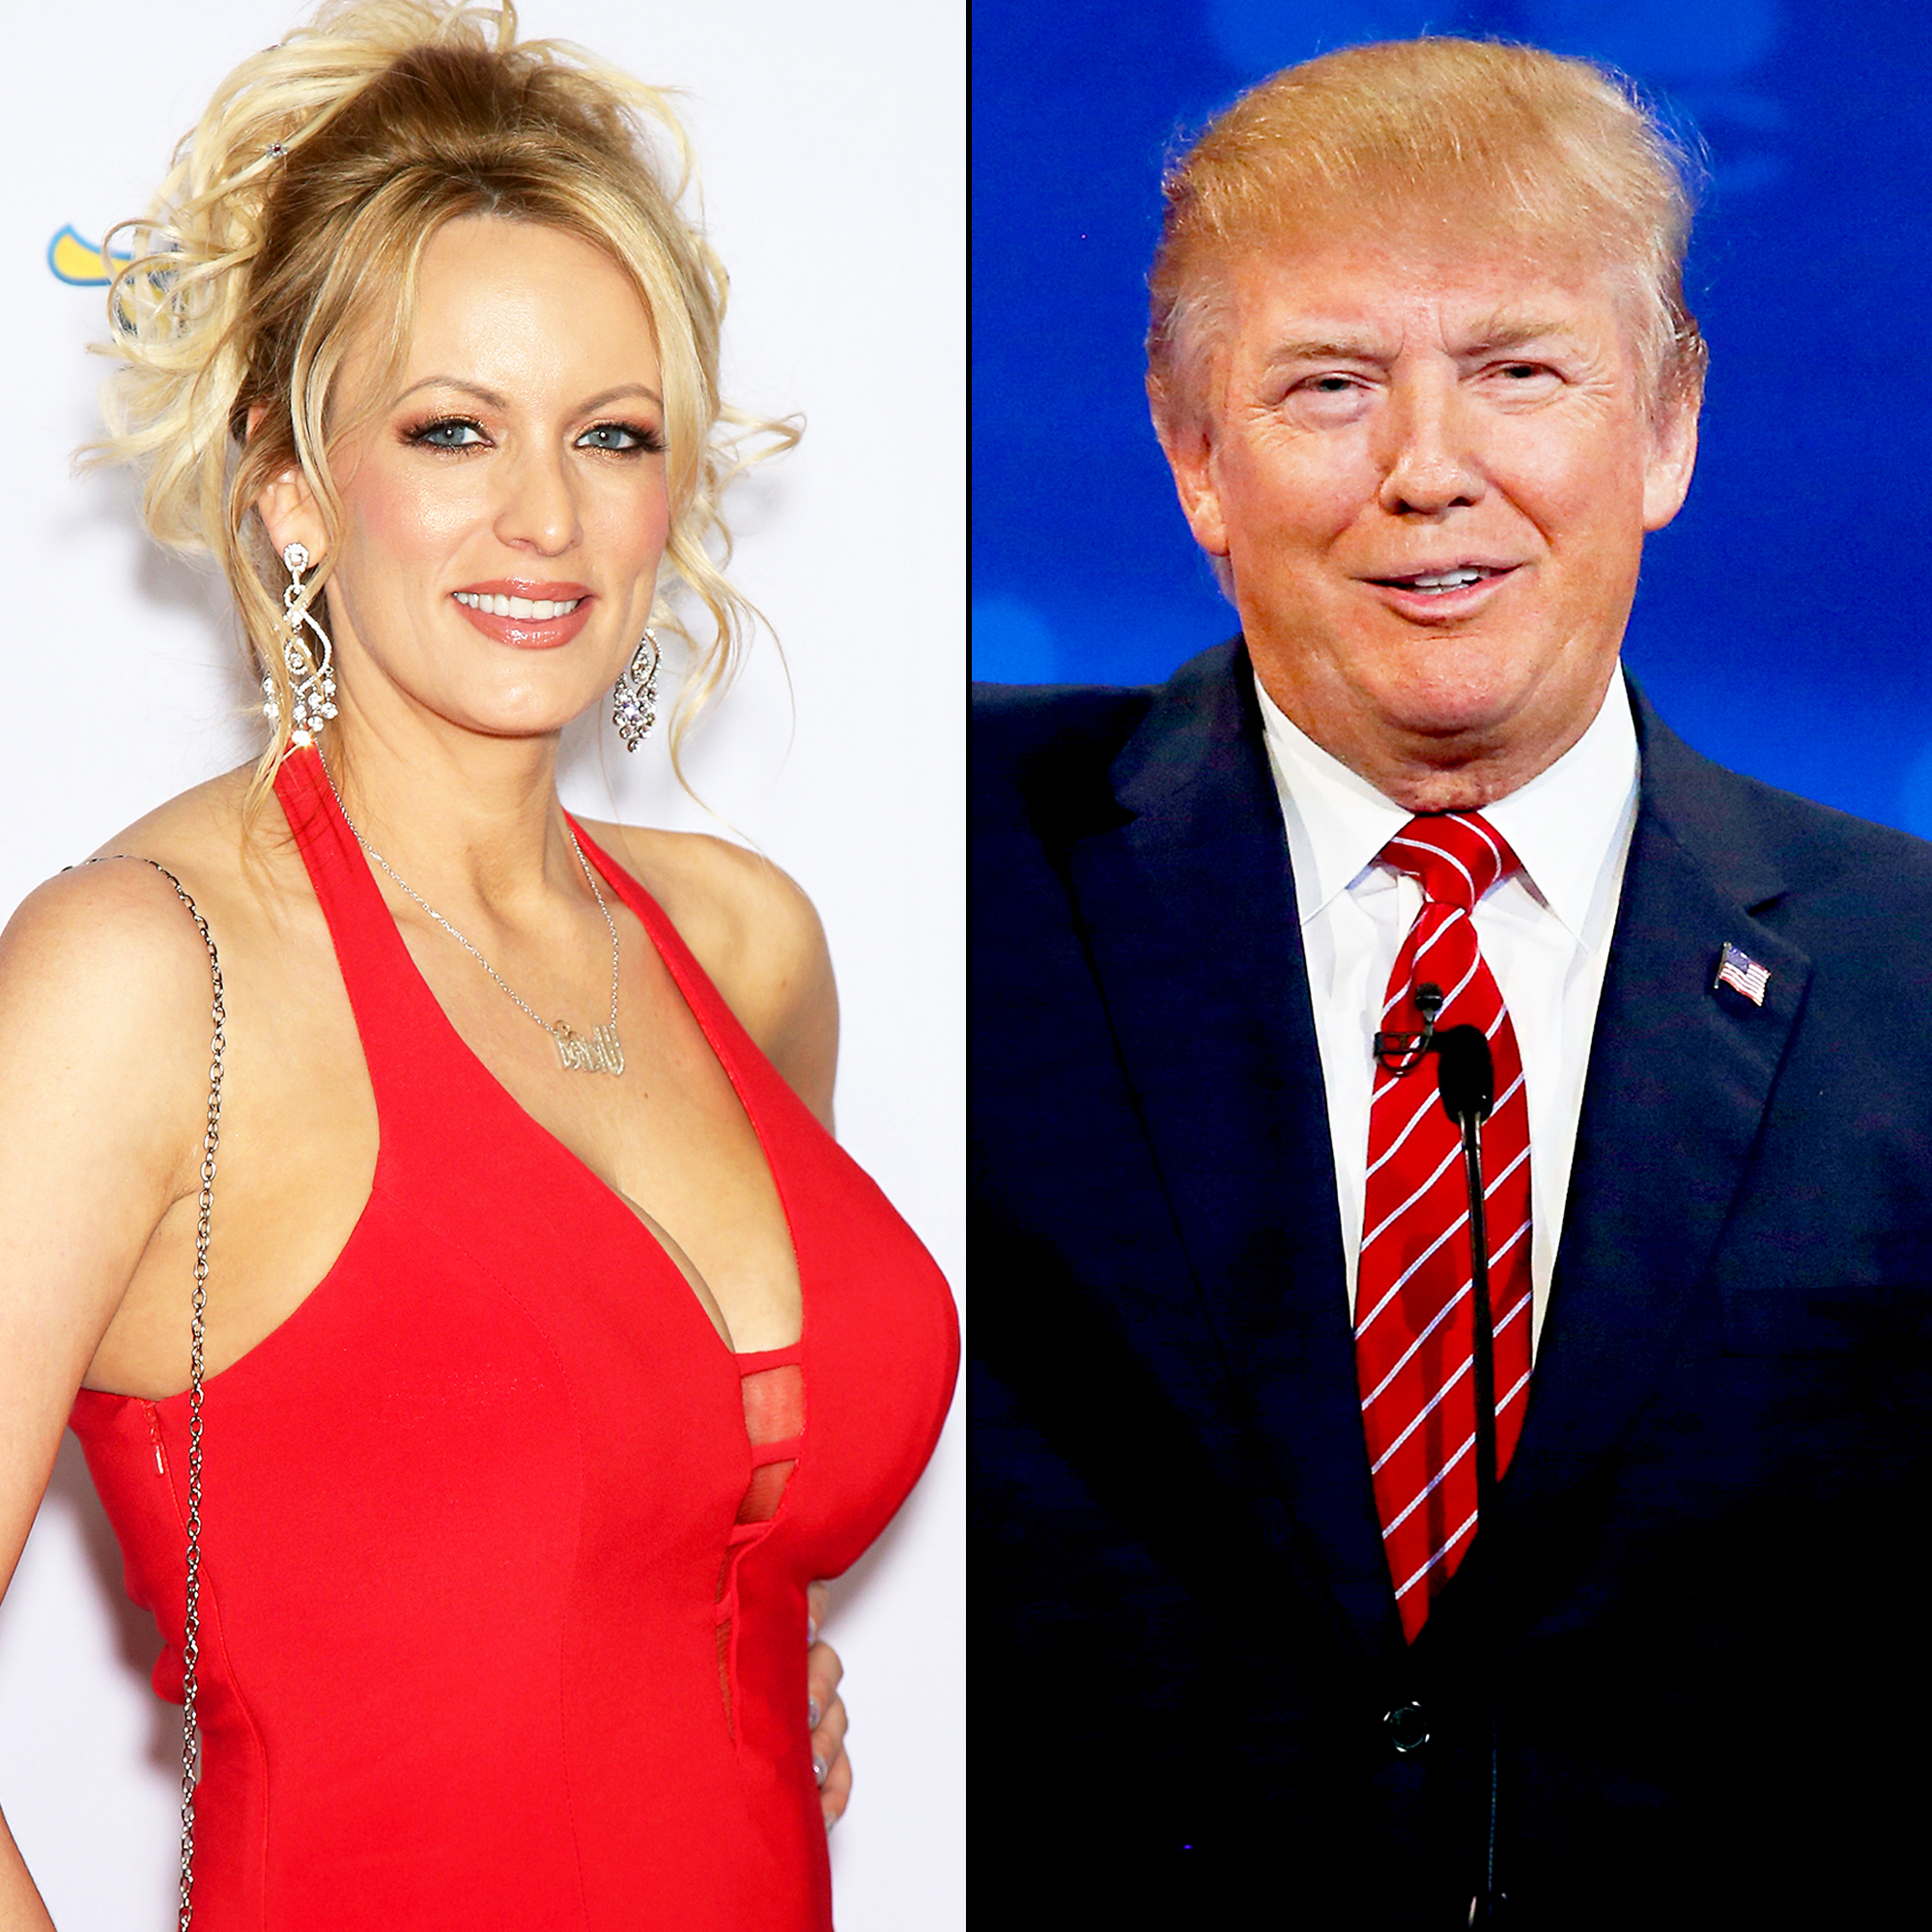 Lawyer: Porn star who alleges Trump affair has faced threats